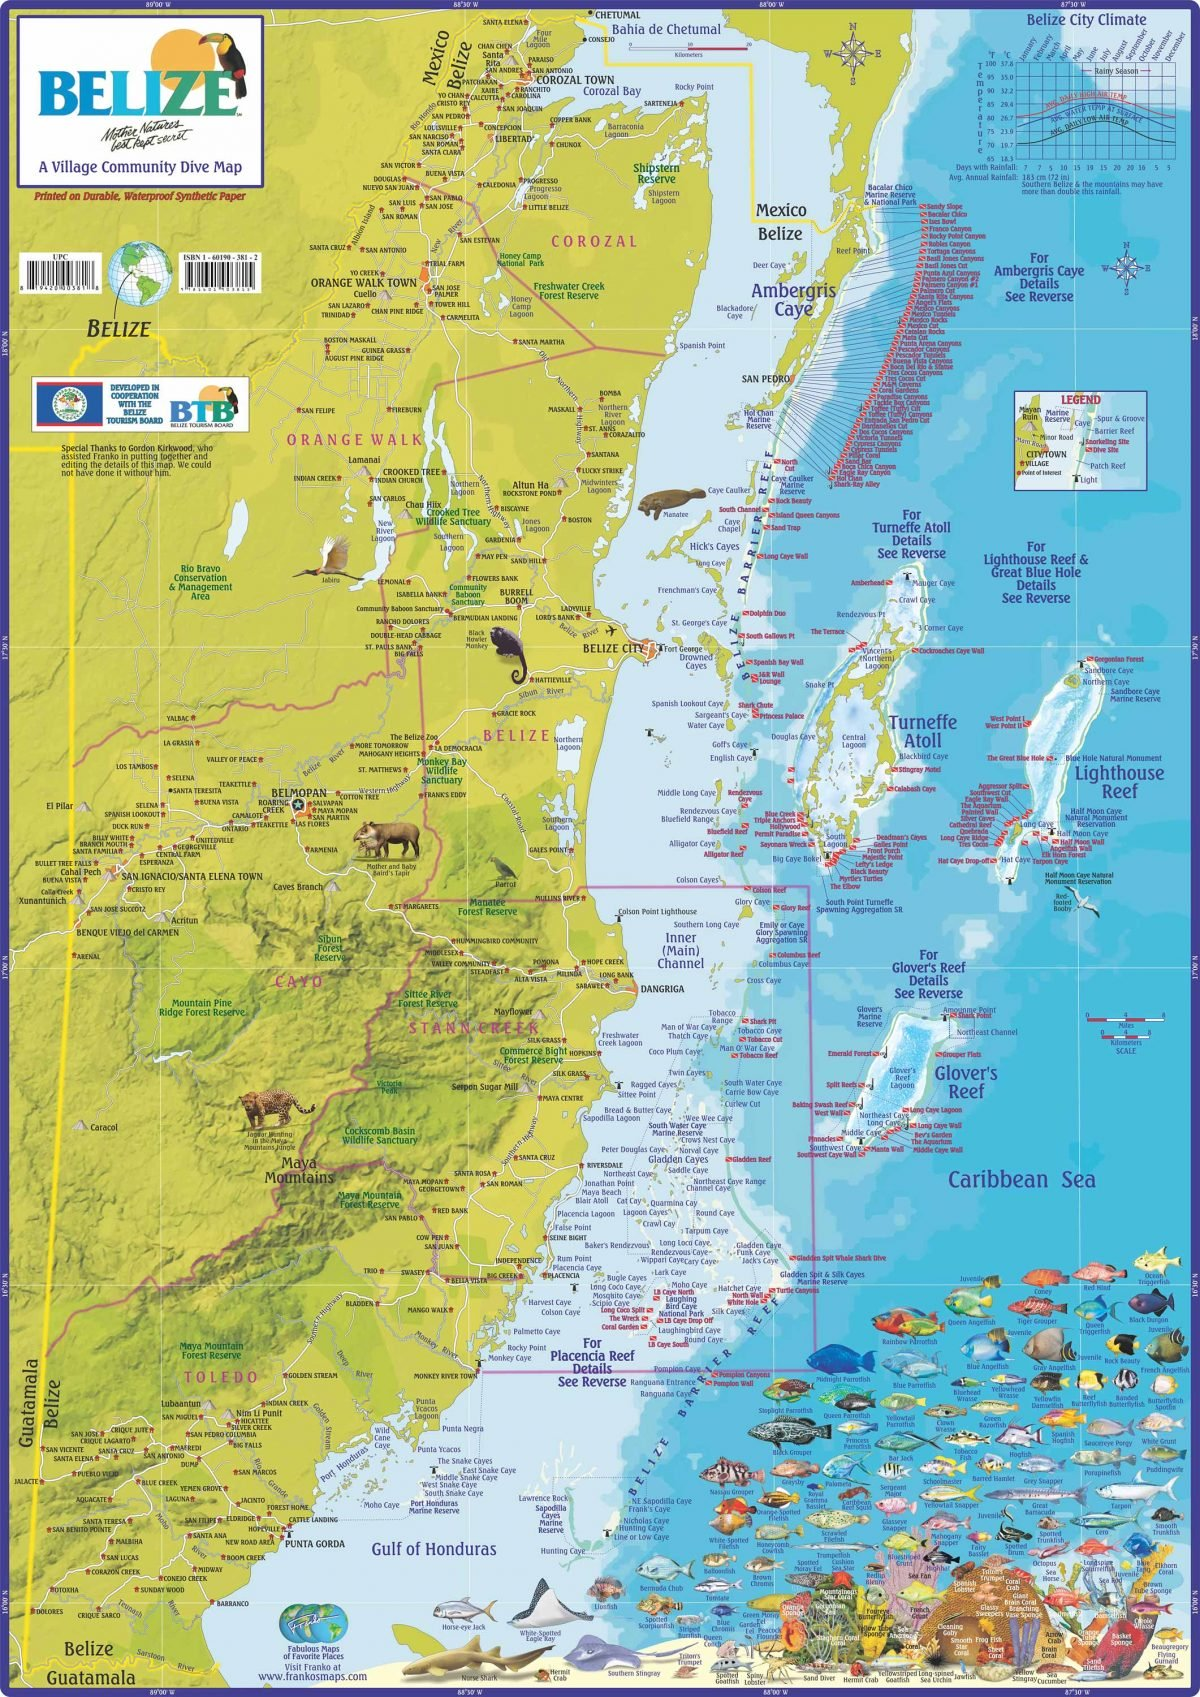 belize_map_travel_guide_chaa_creek